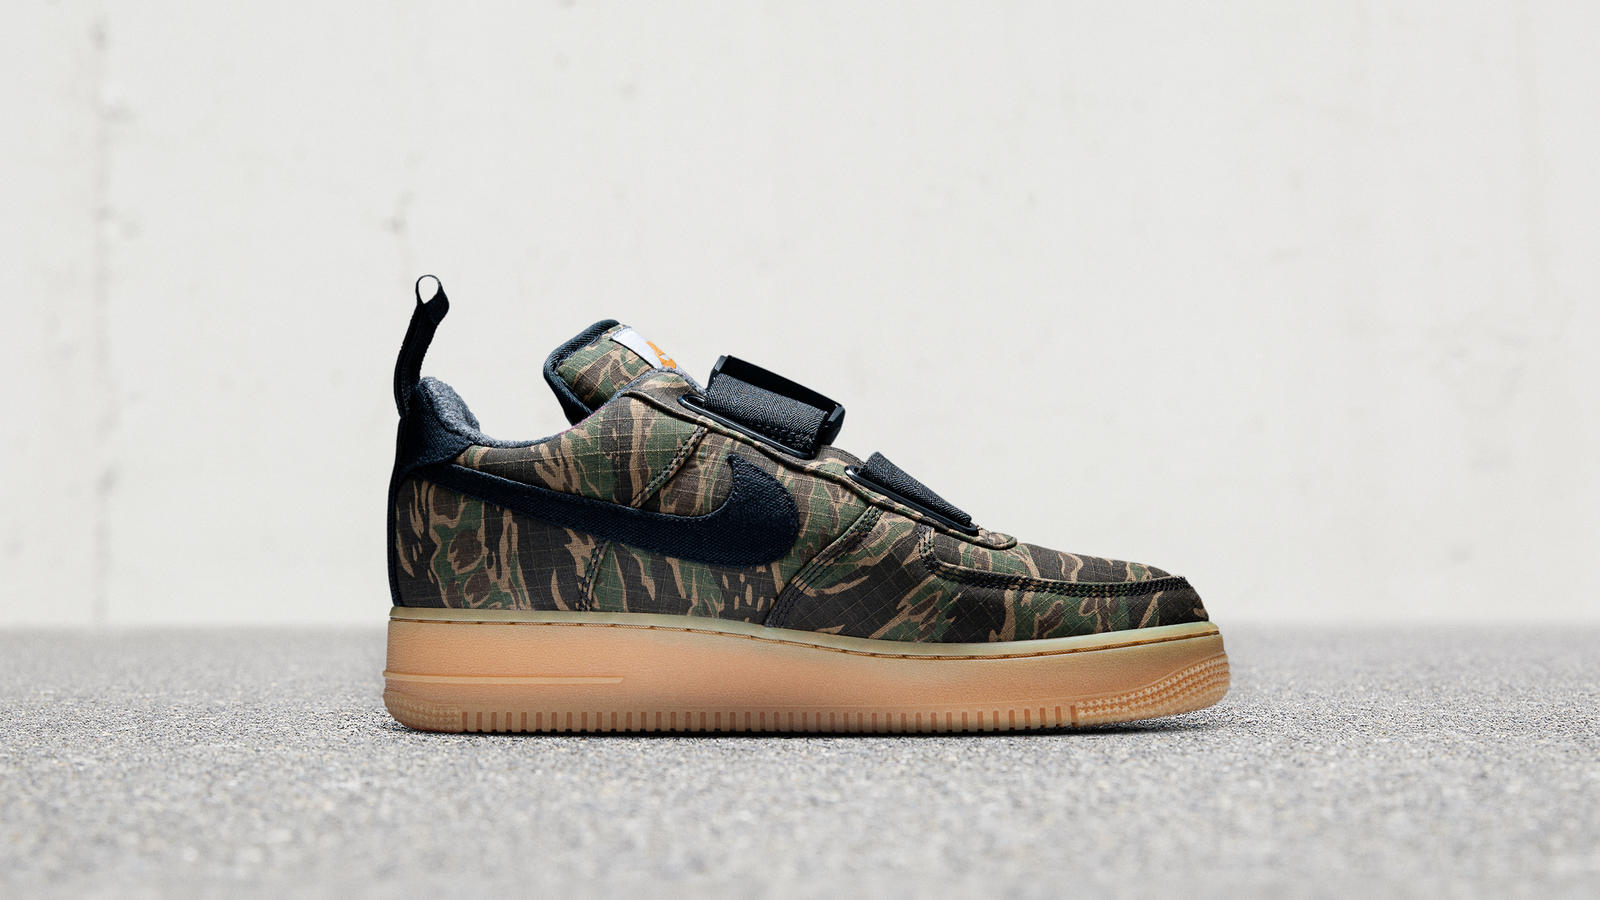 02_FeaturedFootwear_NSW_NikexCarhartt_10.12.18-679_hd_1600